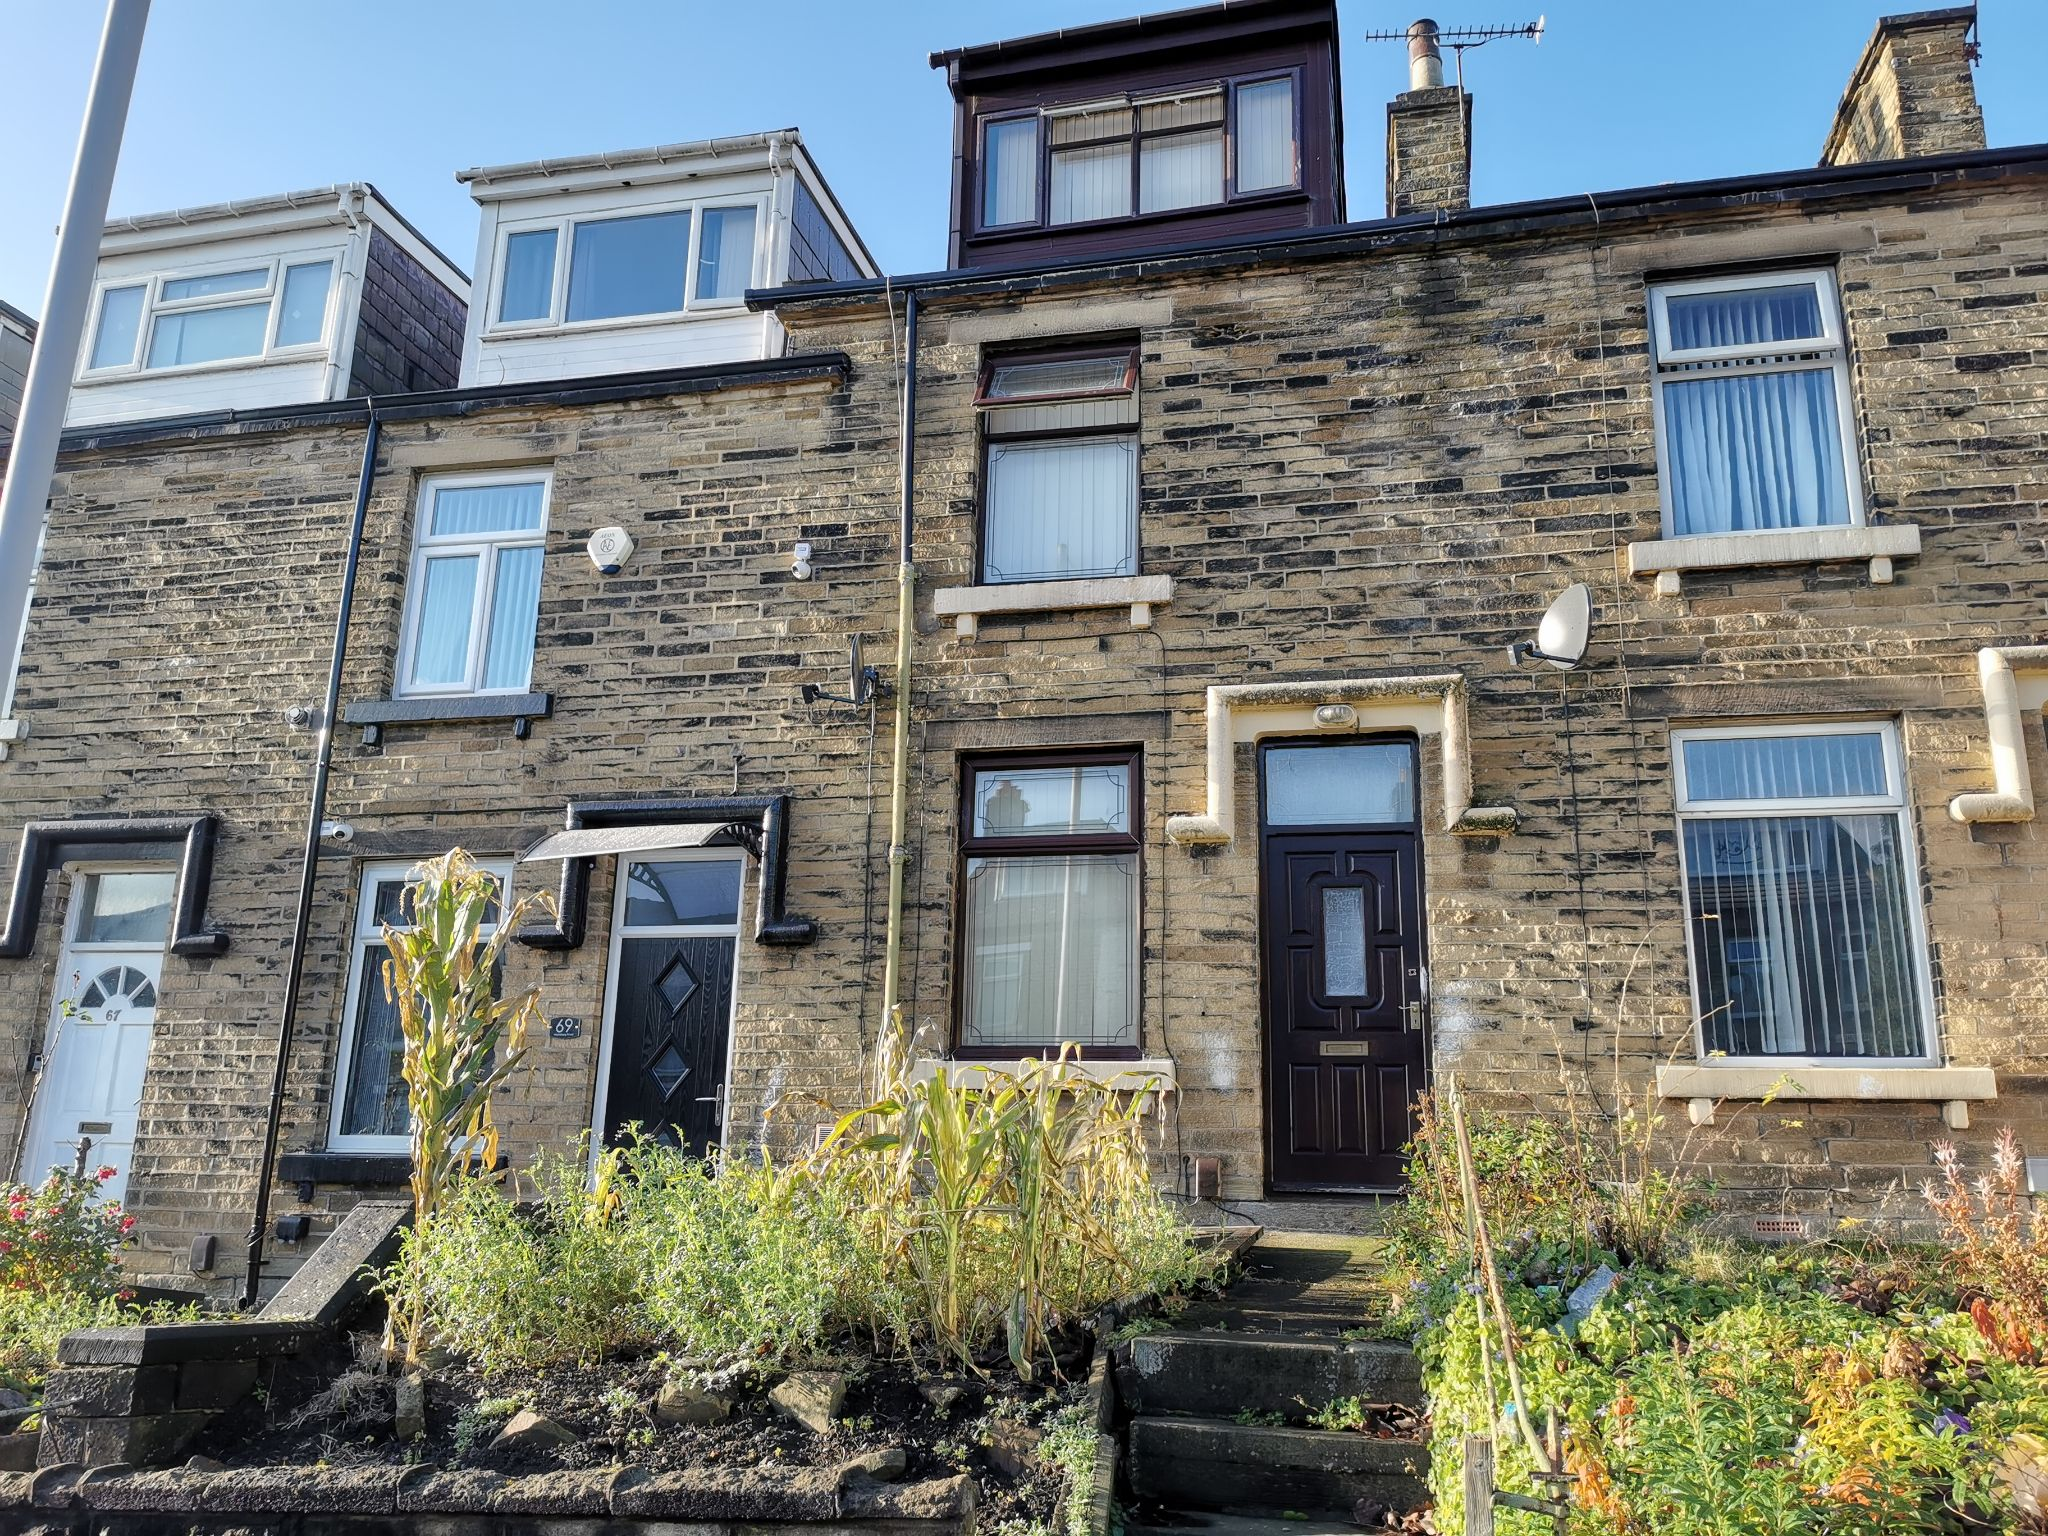 4 bedroom mid terraced house For Sale in Bradford - Photograph 1.